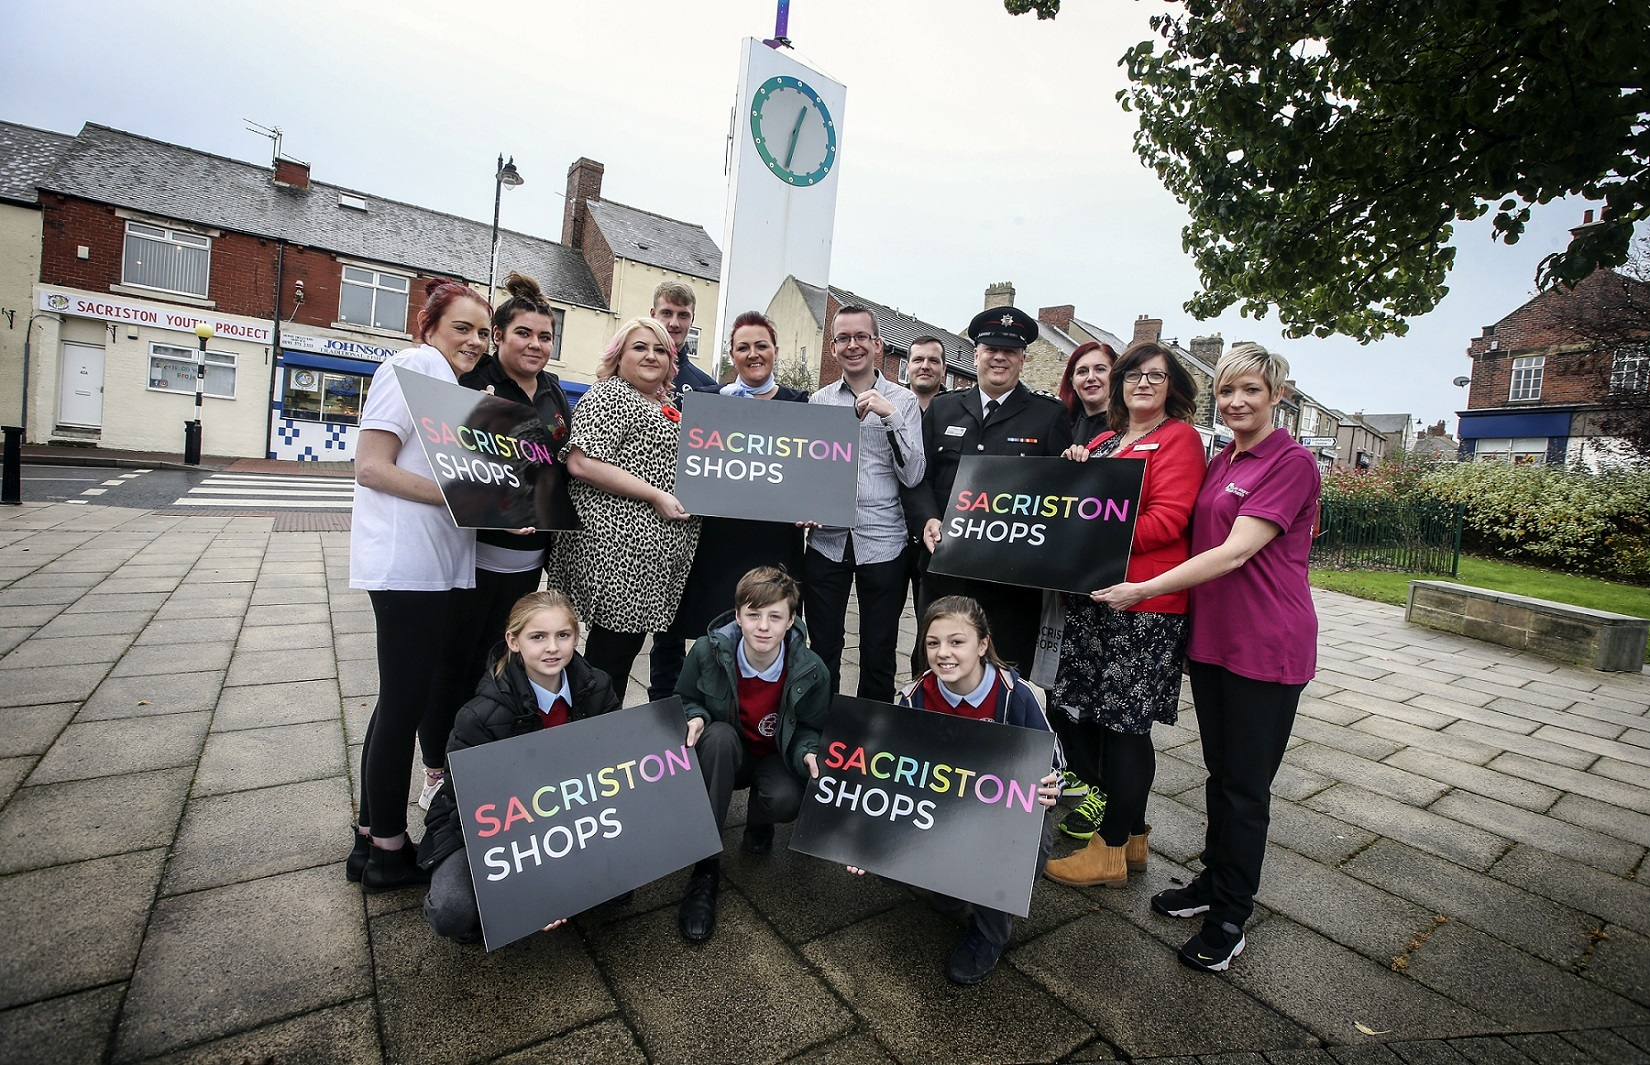 LAUNCH: The Sacriston Shops scheme aims to help village shops and businesses grow expand their customer base